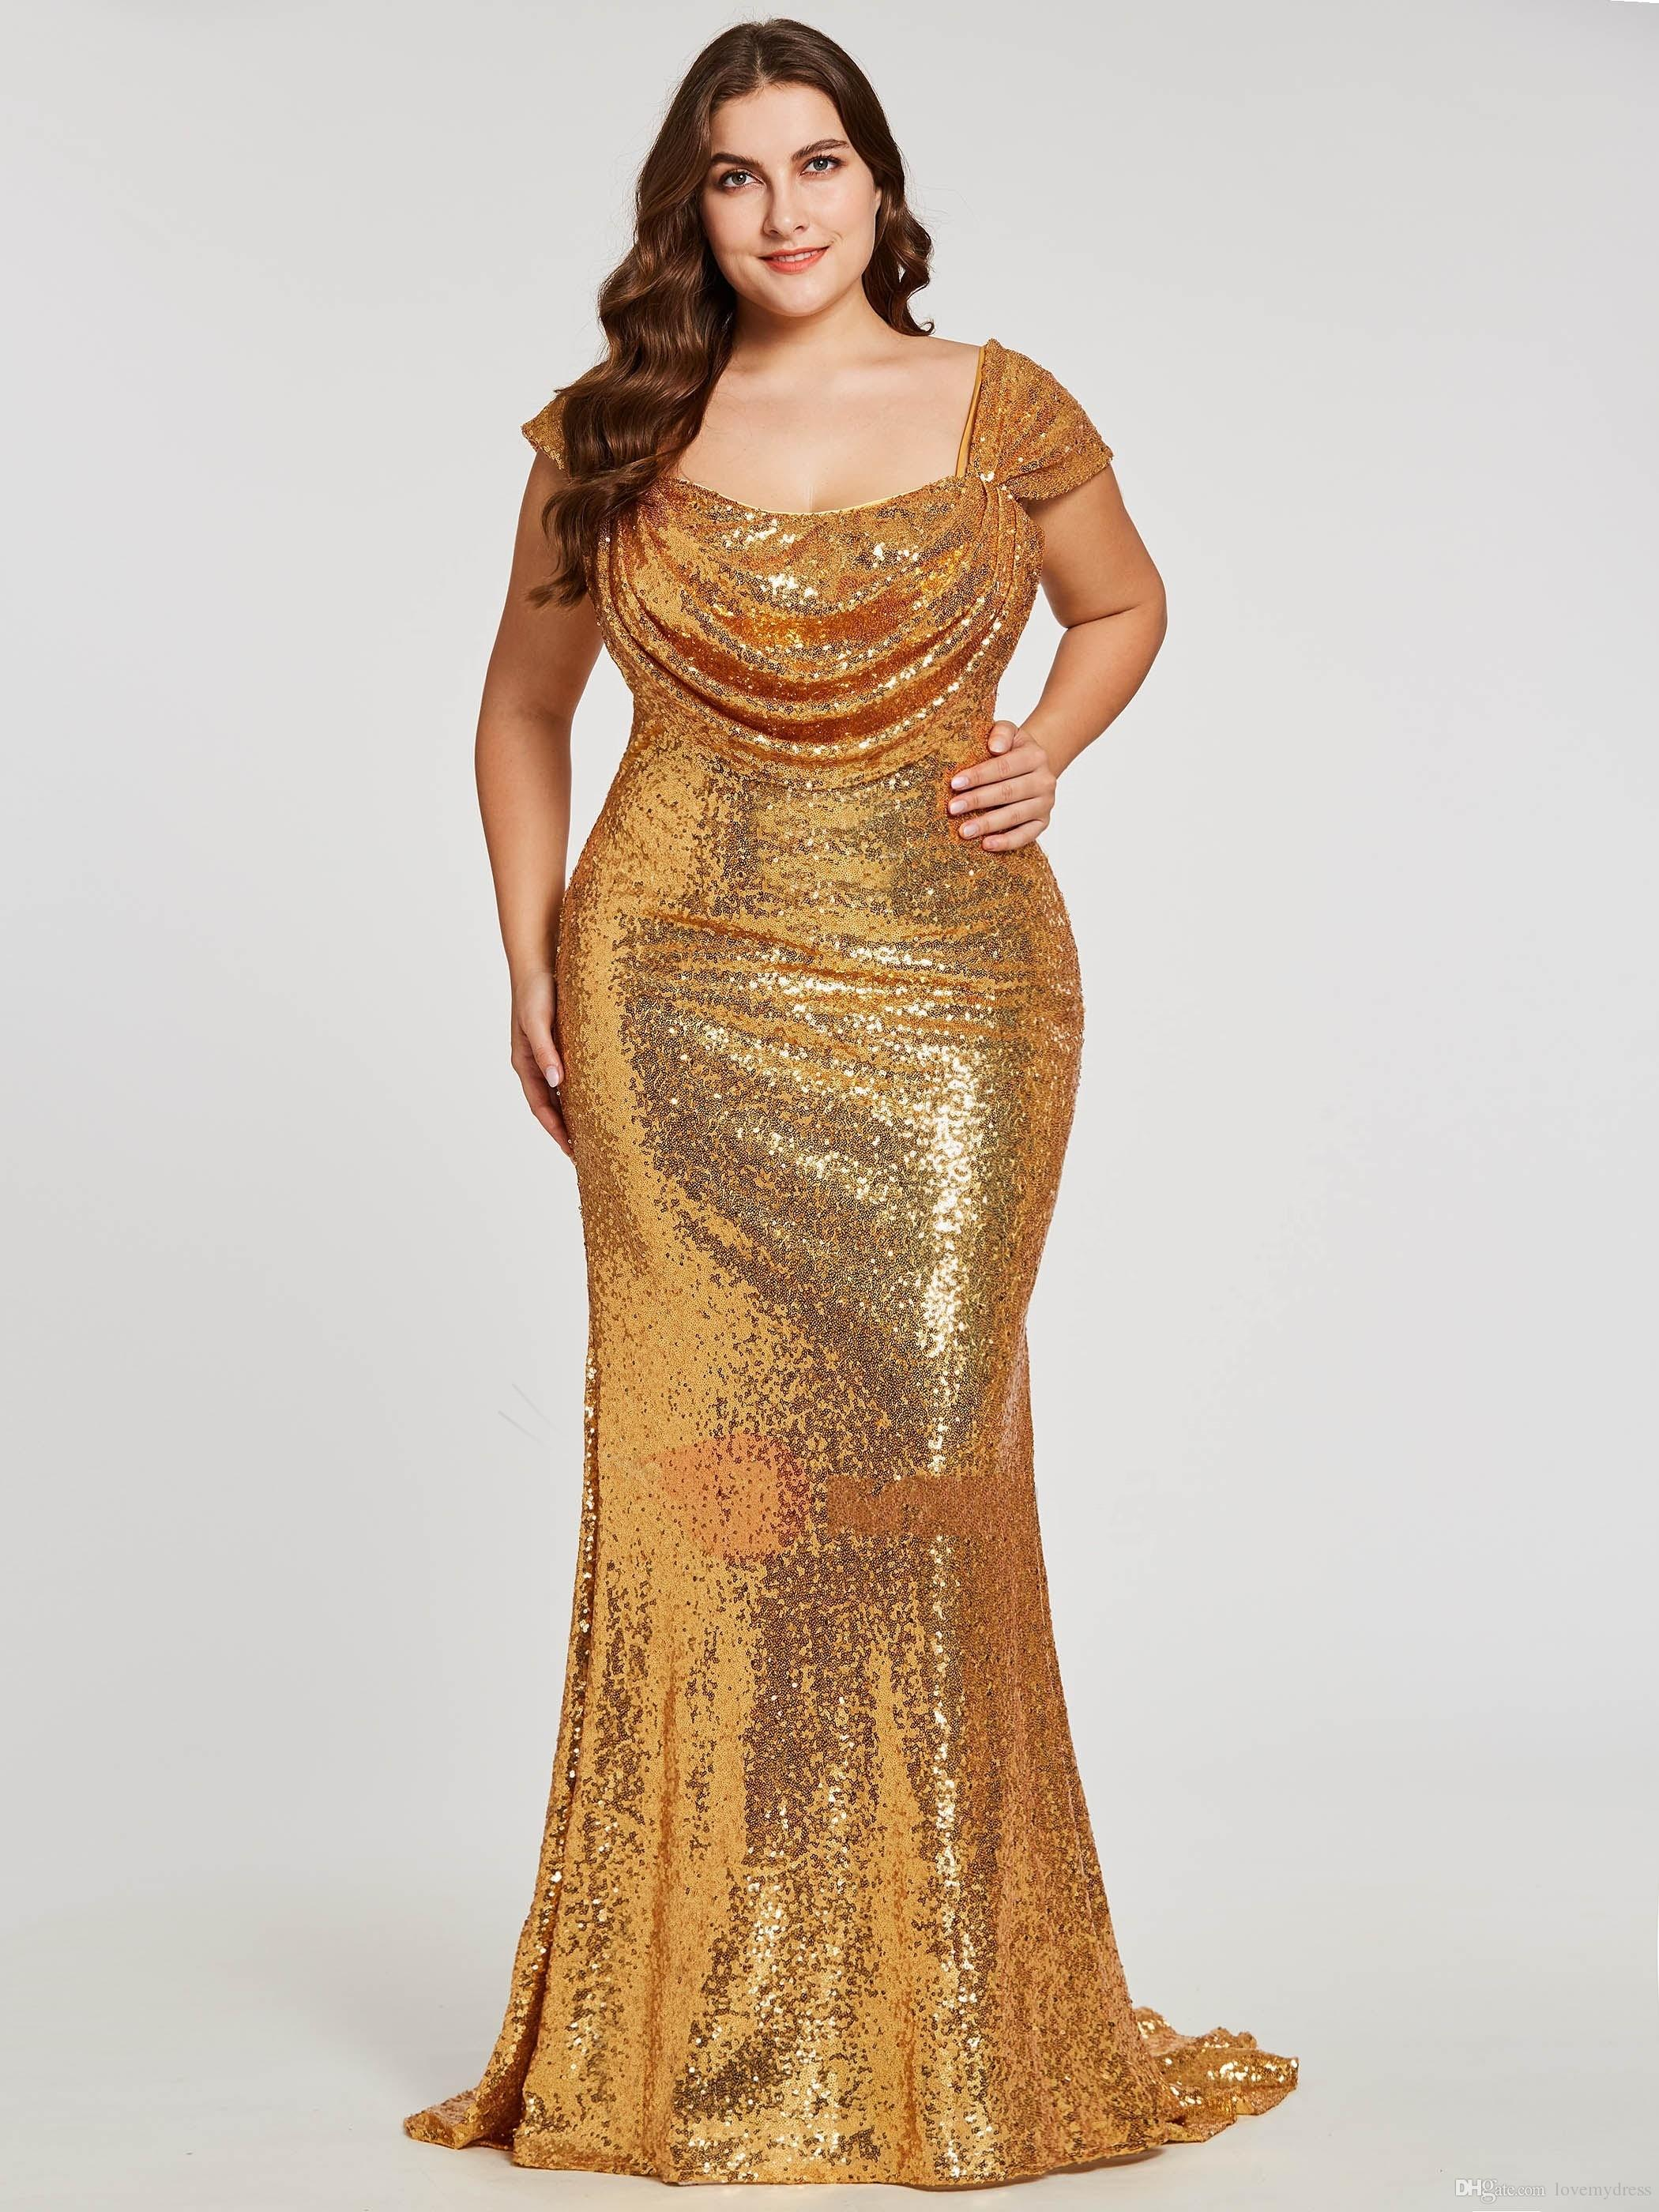 Sparkly Gold Sequined Plus size Evening Prom Dress Square Neck 2021 Mermaid Zipper Back Floor Length Ruched New Pageant Dress